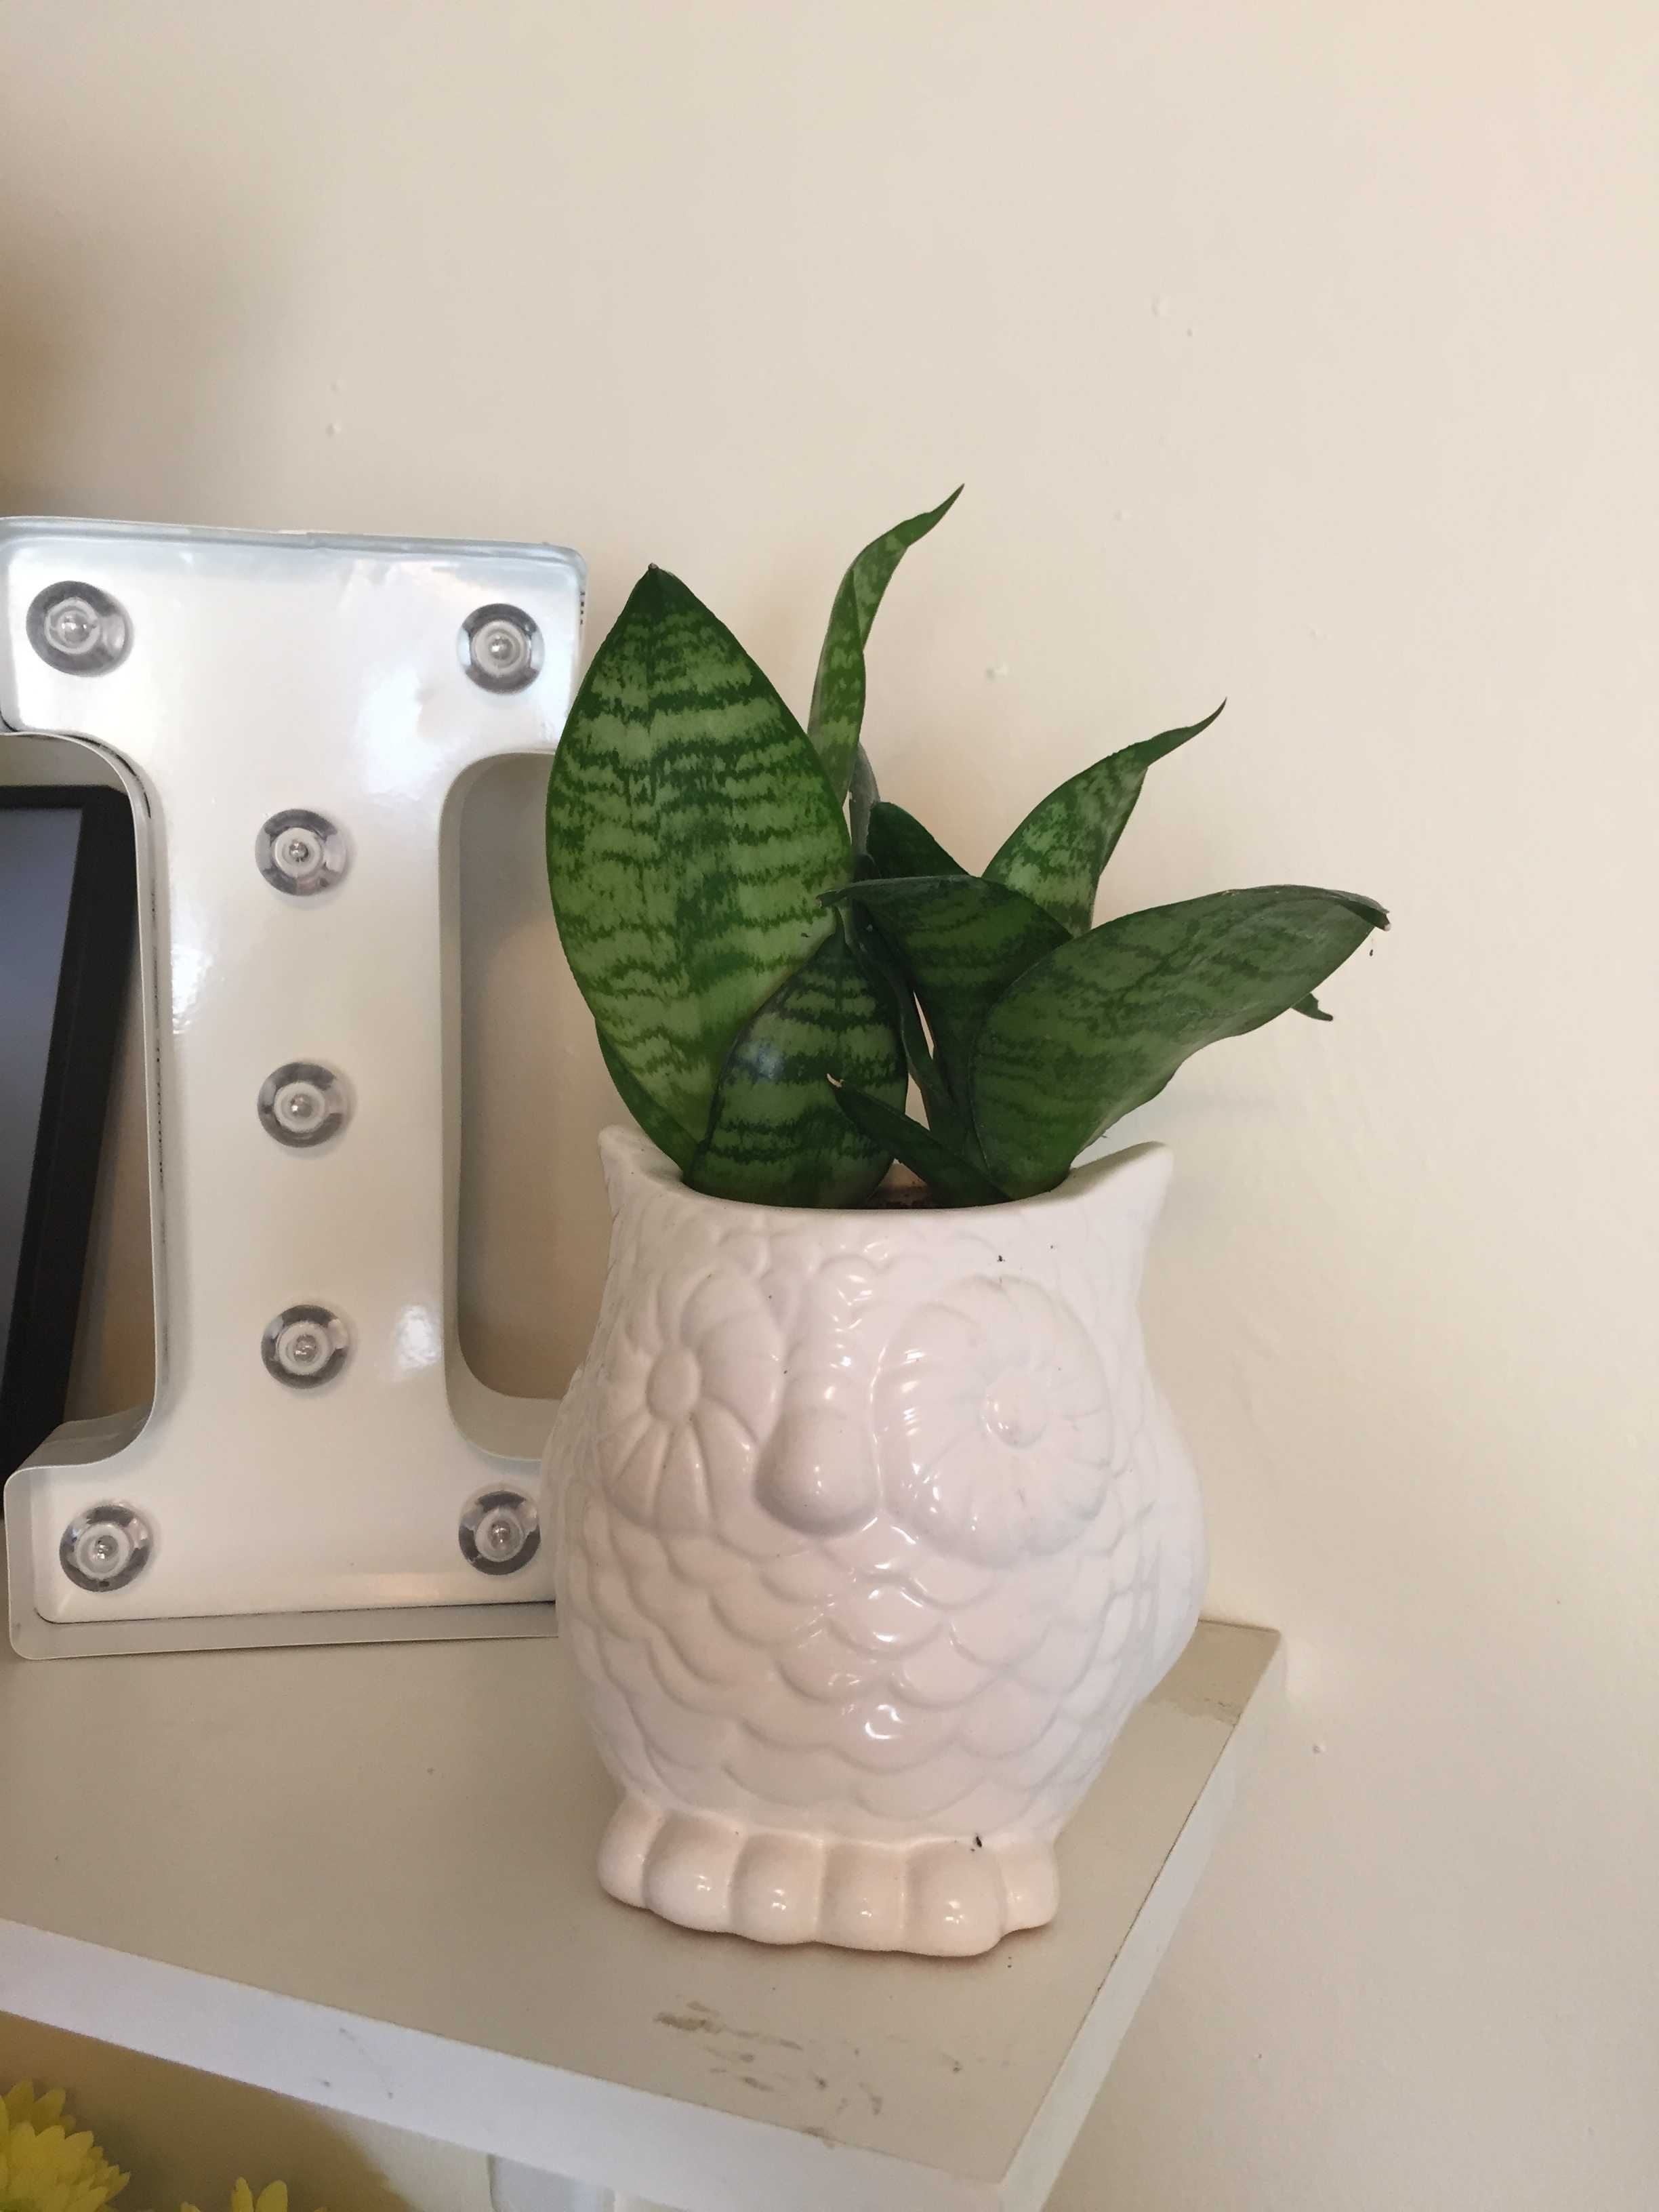 Houseplants+are+a+beautiful+addition+to+any+dorm+or+apartment+and+can+be+cared+for+relatively+easily.+These+tips+will+help+them+flourish.%26nbsp%3B